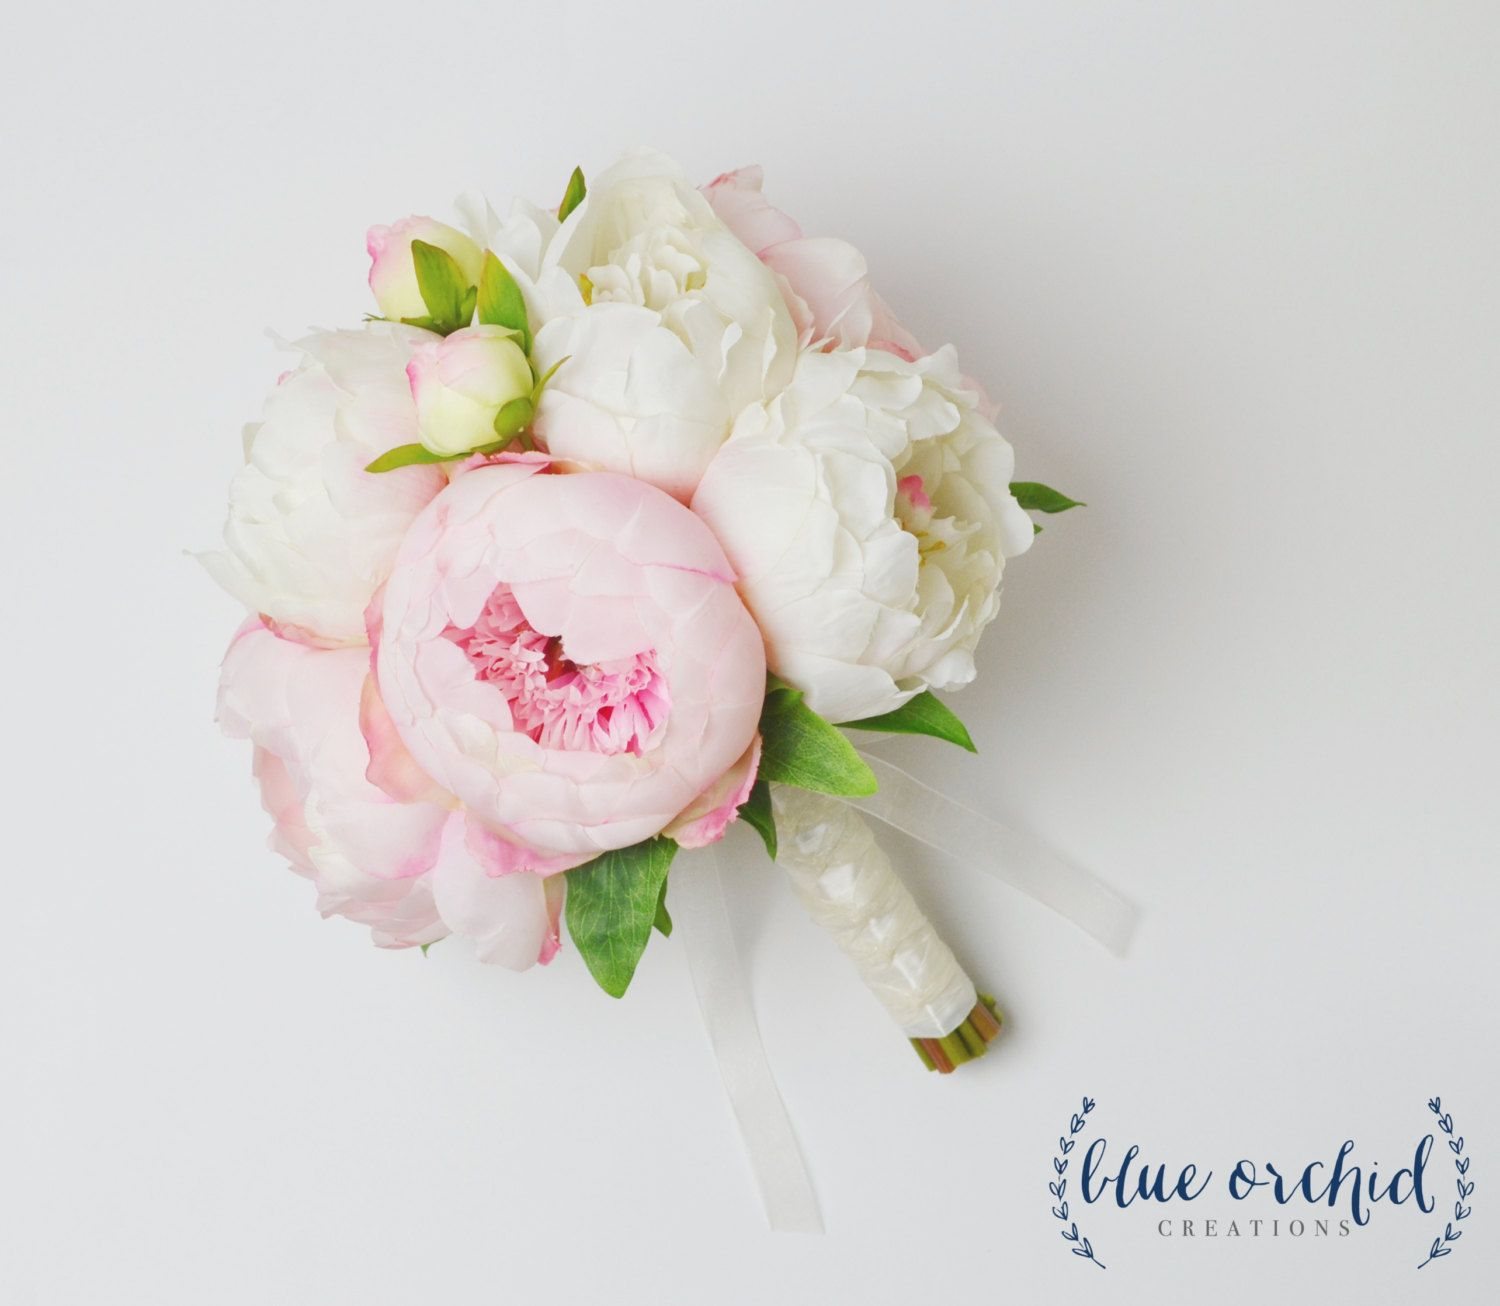 Peony Bouquet With White And Pink Peonies Silk Peony Wedding Bouquet Peonies Cream And Blush Peo Peony Bouquet Wedding Peonies Bouquet Small Flower Bouquet